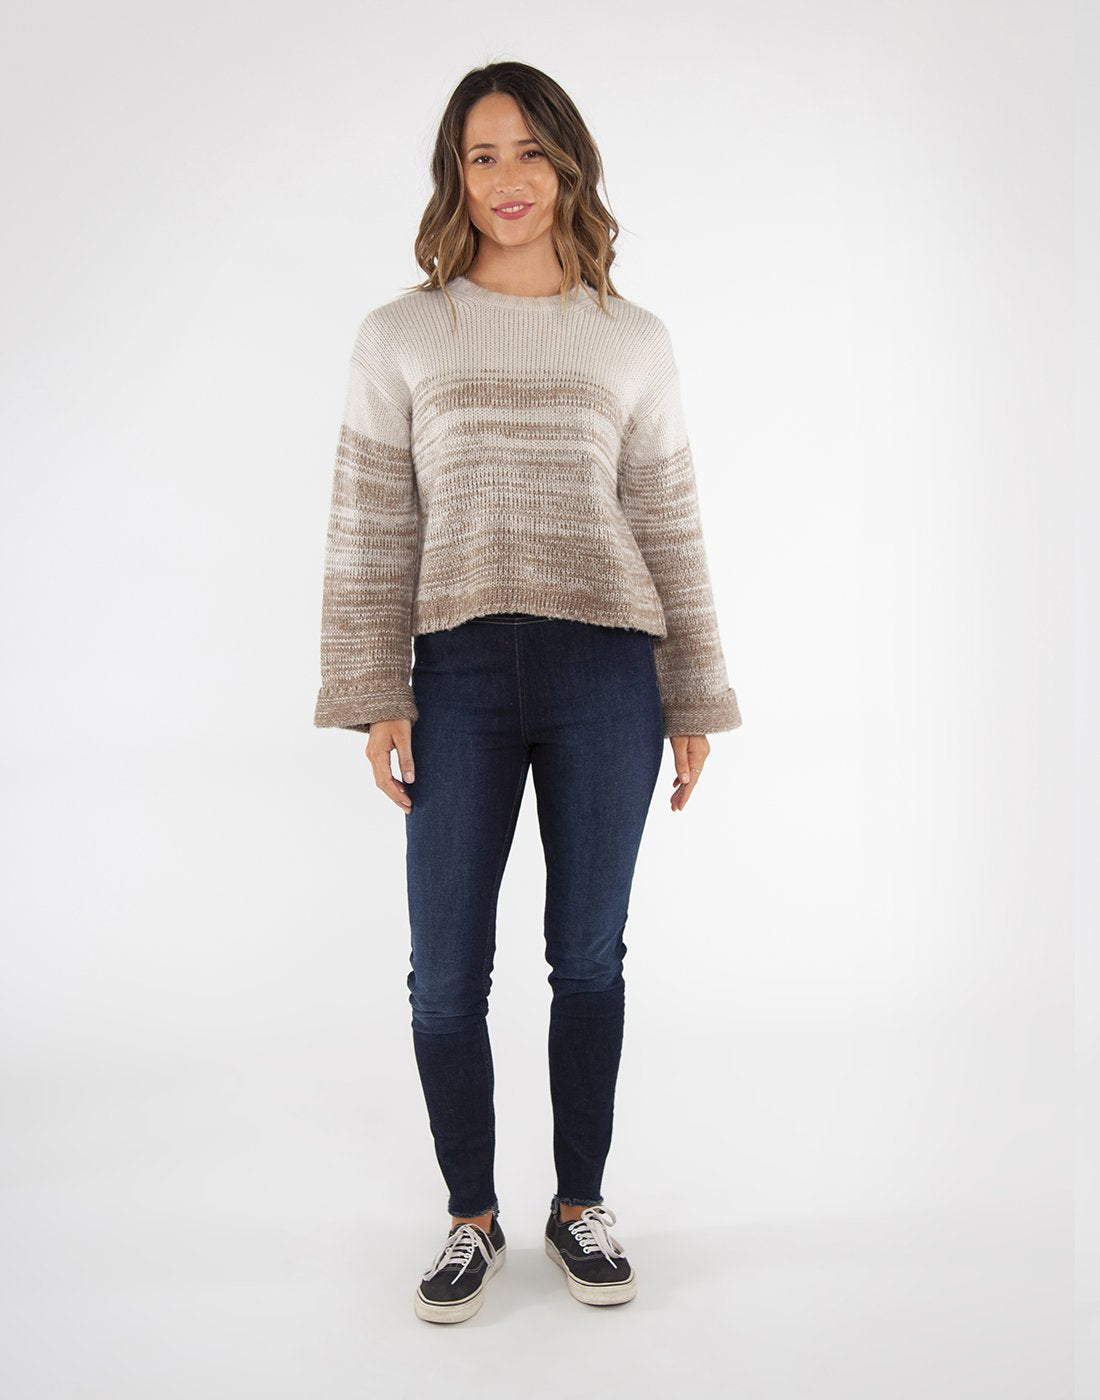 Carve Designs Estes Ombre Sweater - Sale